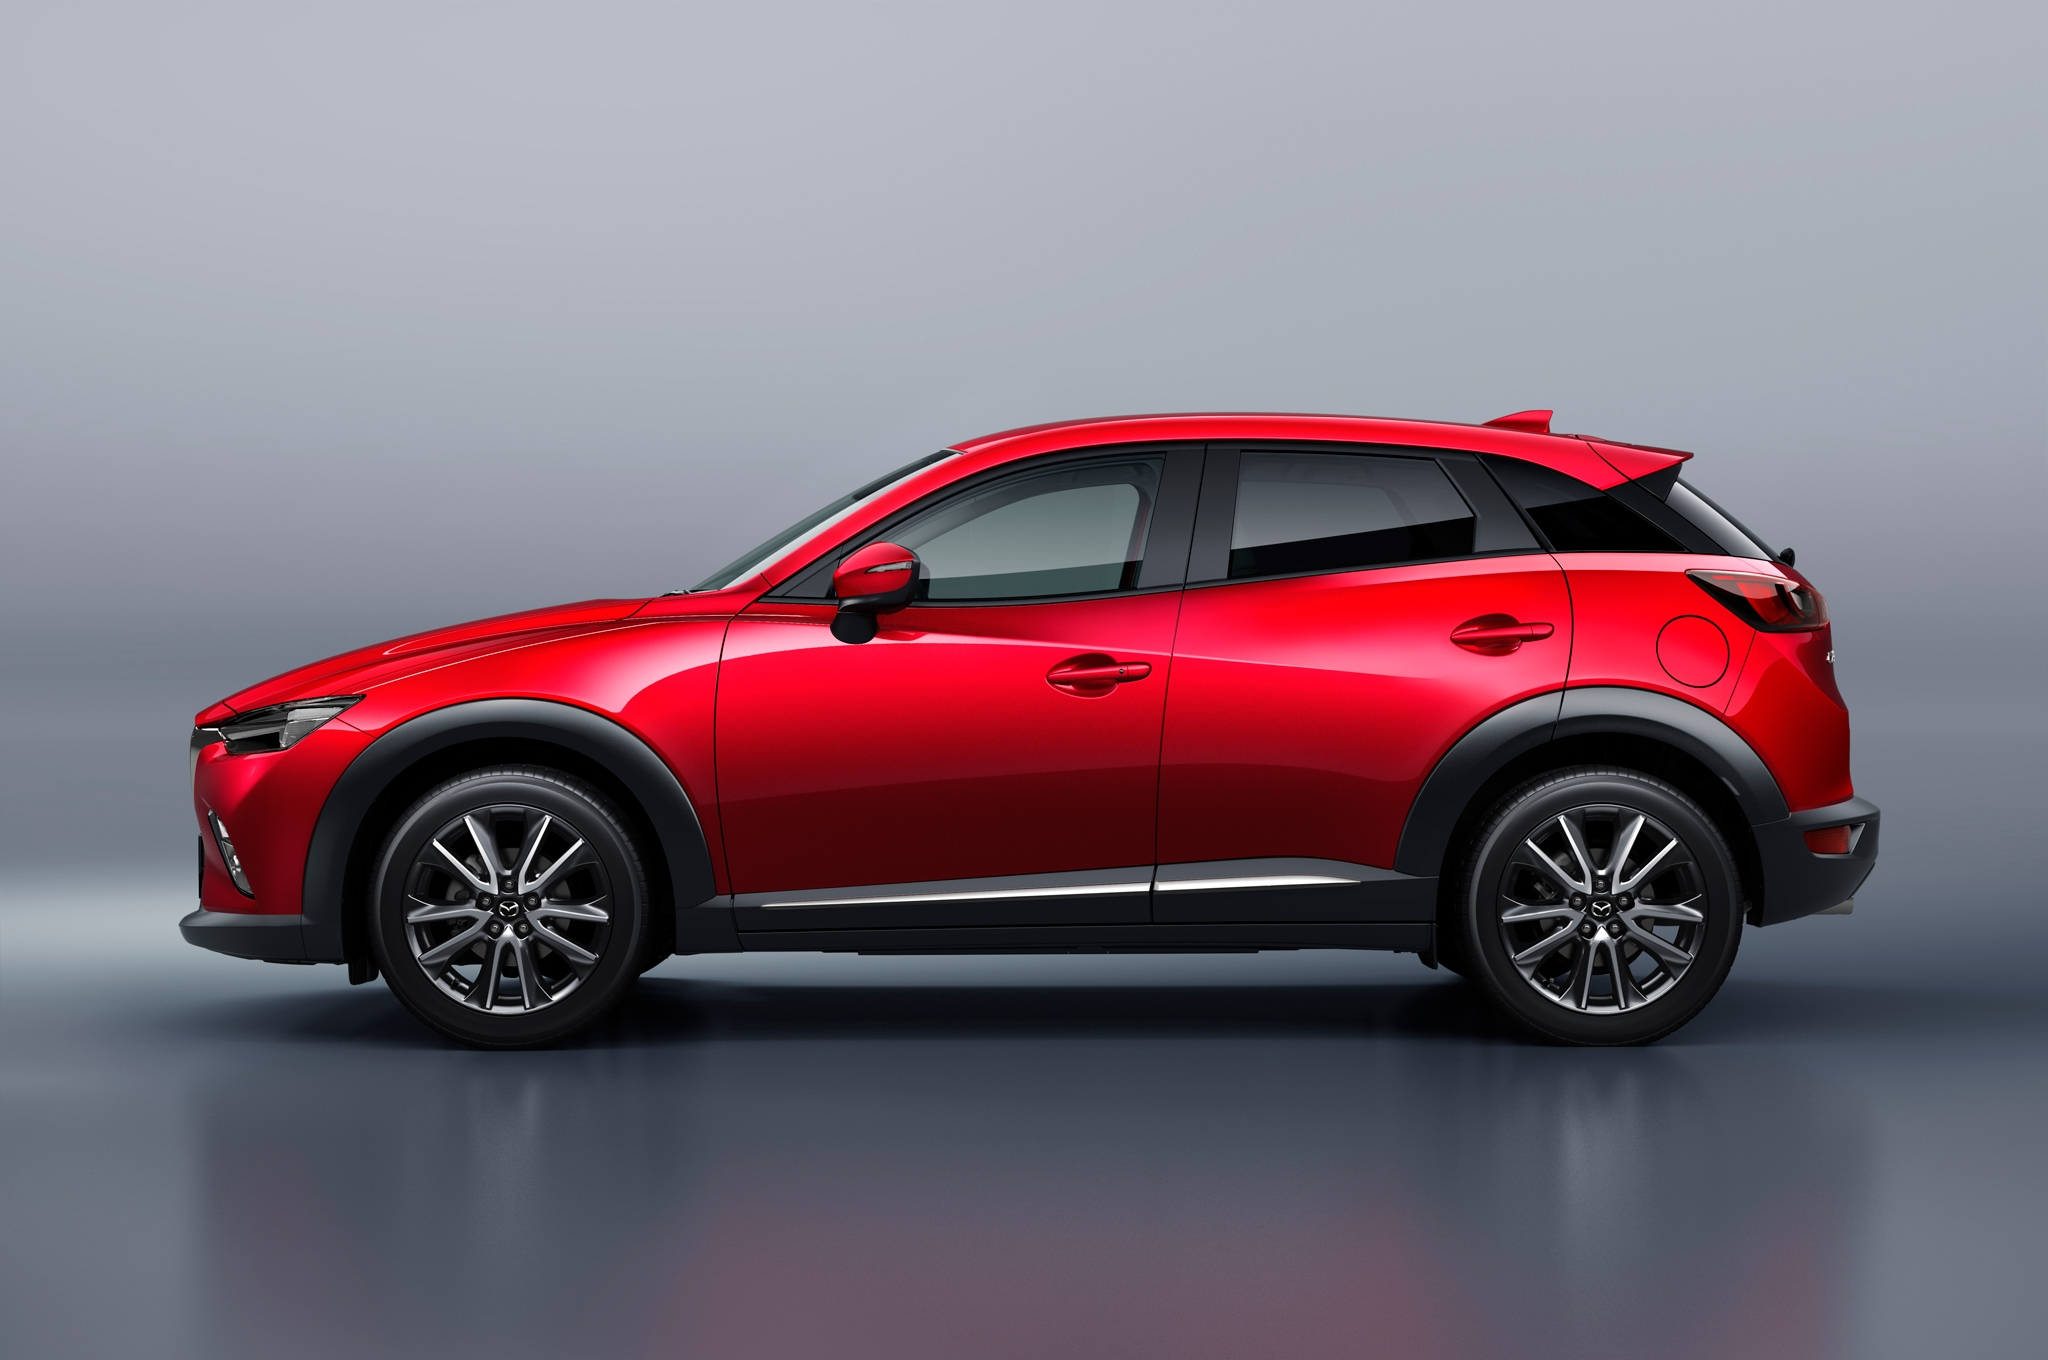 mazda cx 3 2016 hd wallpapers free download. Black Bedroom Furniture Sets. Home Design Ideas